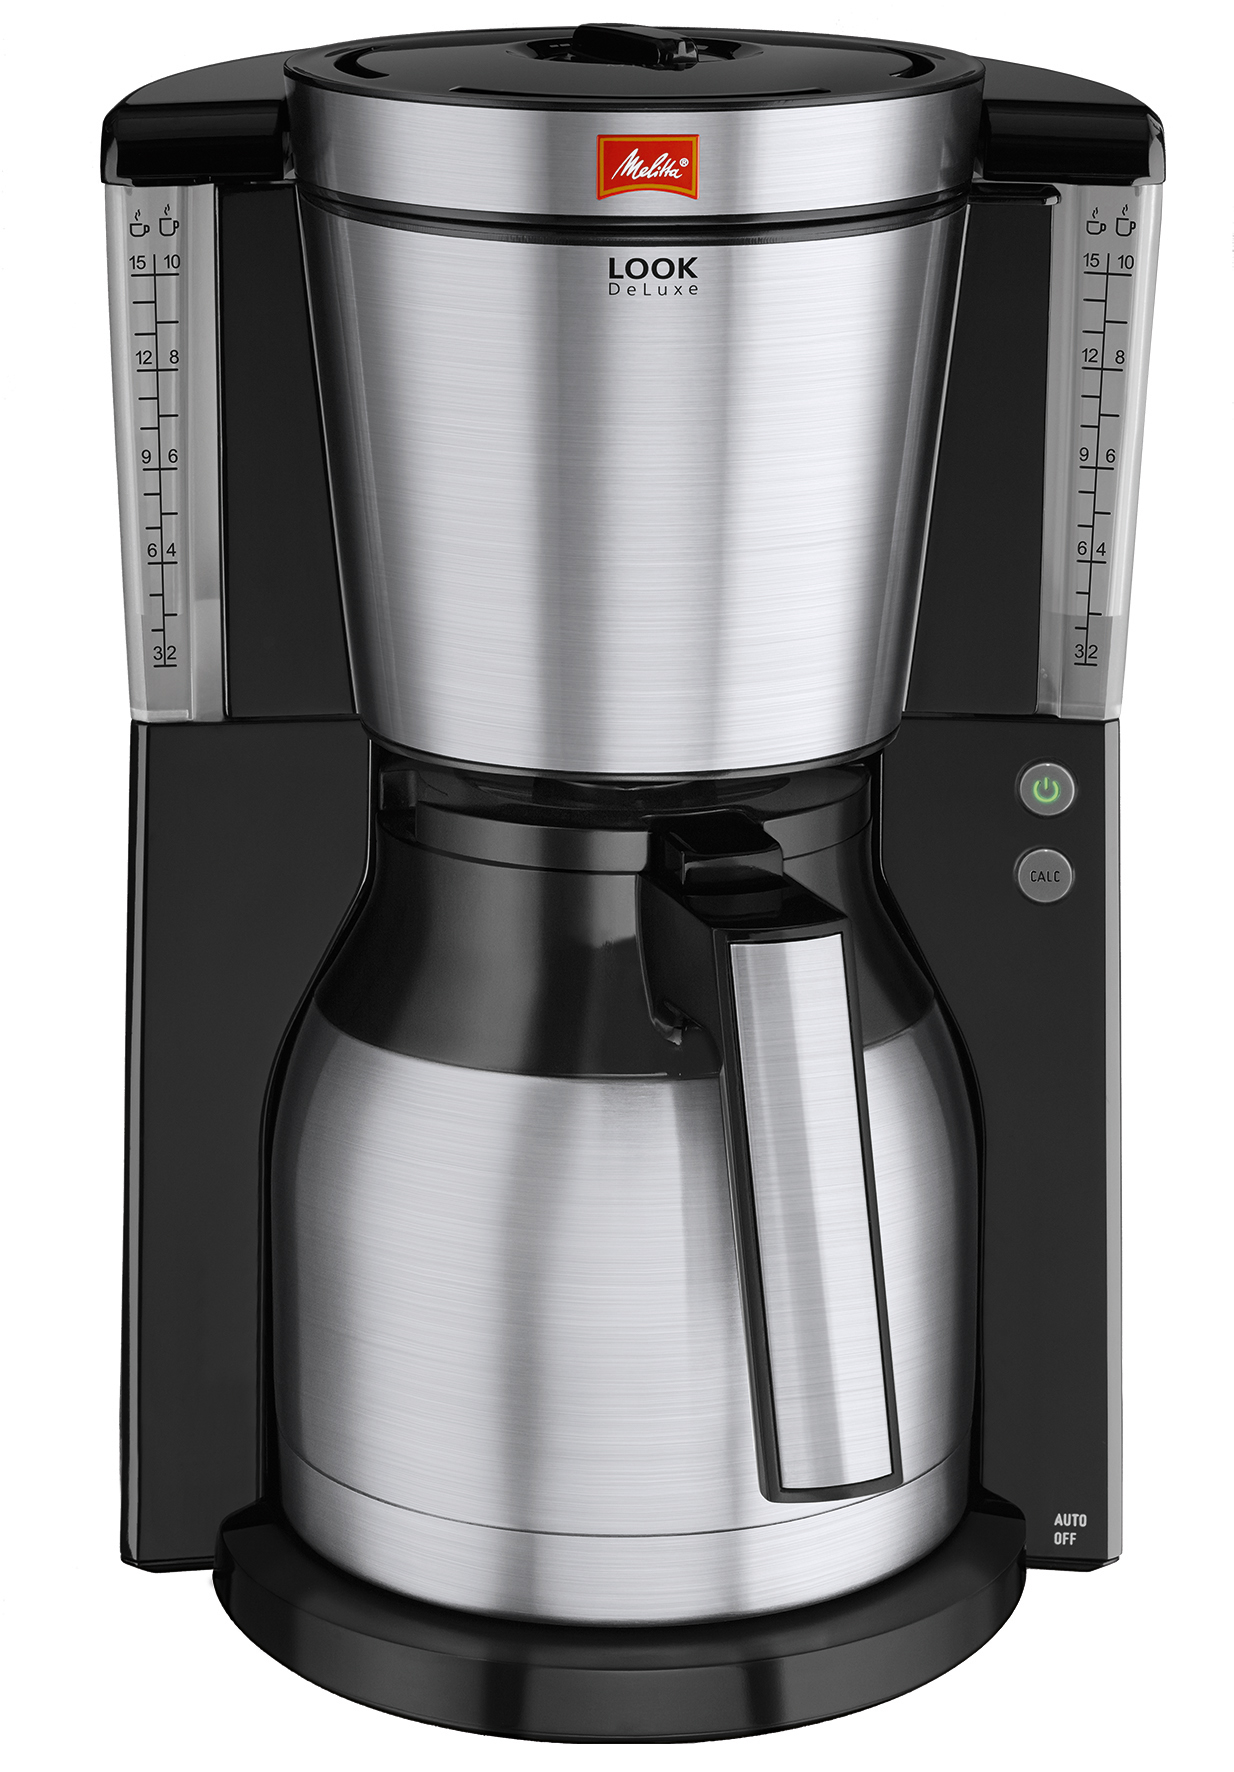 melitta kaffeemaschine look therm deluxe edelstahlblenden aromaselector. Black Bedroom Furniture Sets. Home Design Ideas